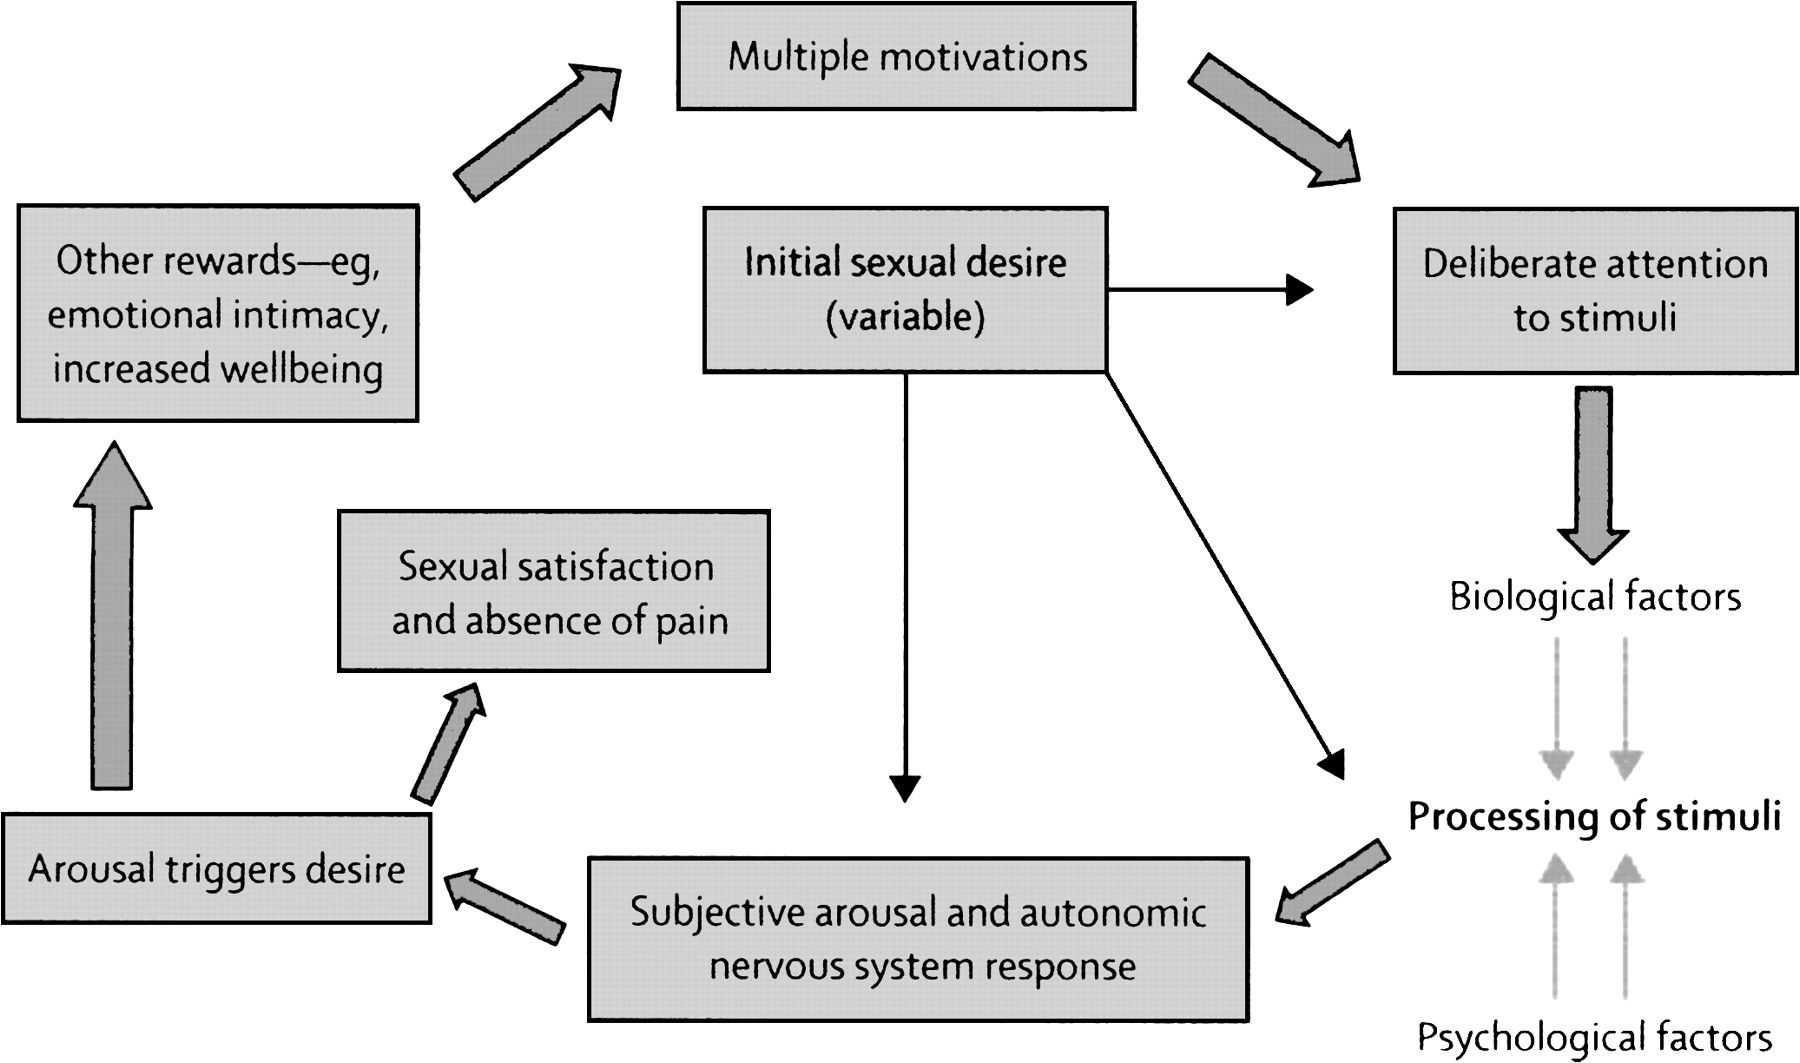 sexual response cycle and abnormalities The sexual response cycle alyssa dooms university of phoenix psy 210 charlette martin there are four phases of the sexual response cycle for females, males, and there are commonalities for both sexes the four phases are excitement phase, plateau phase, orgasmic phase, and resolution.